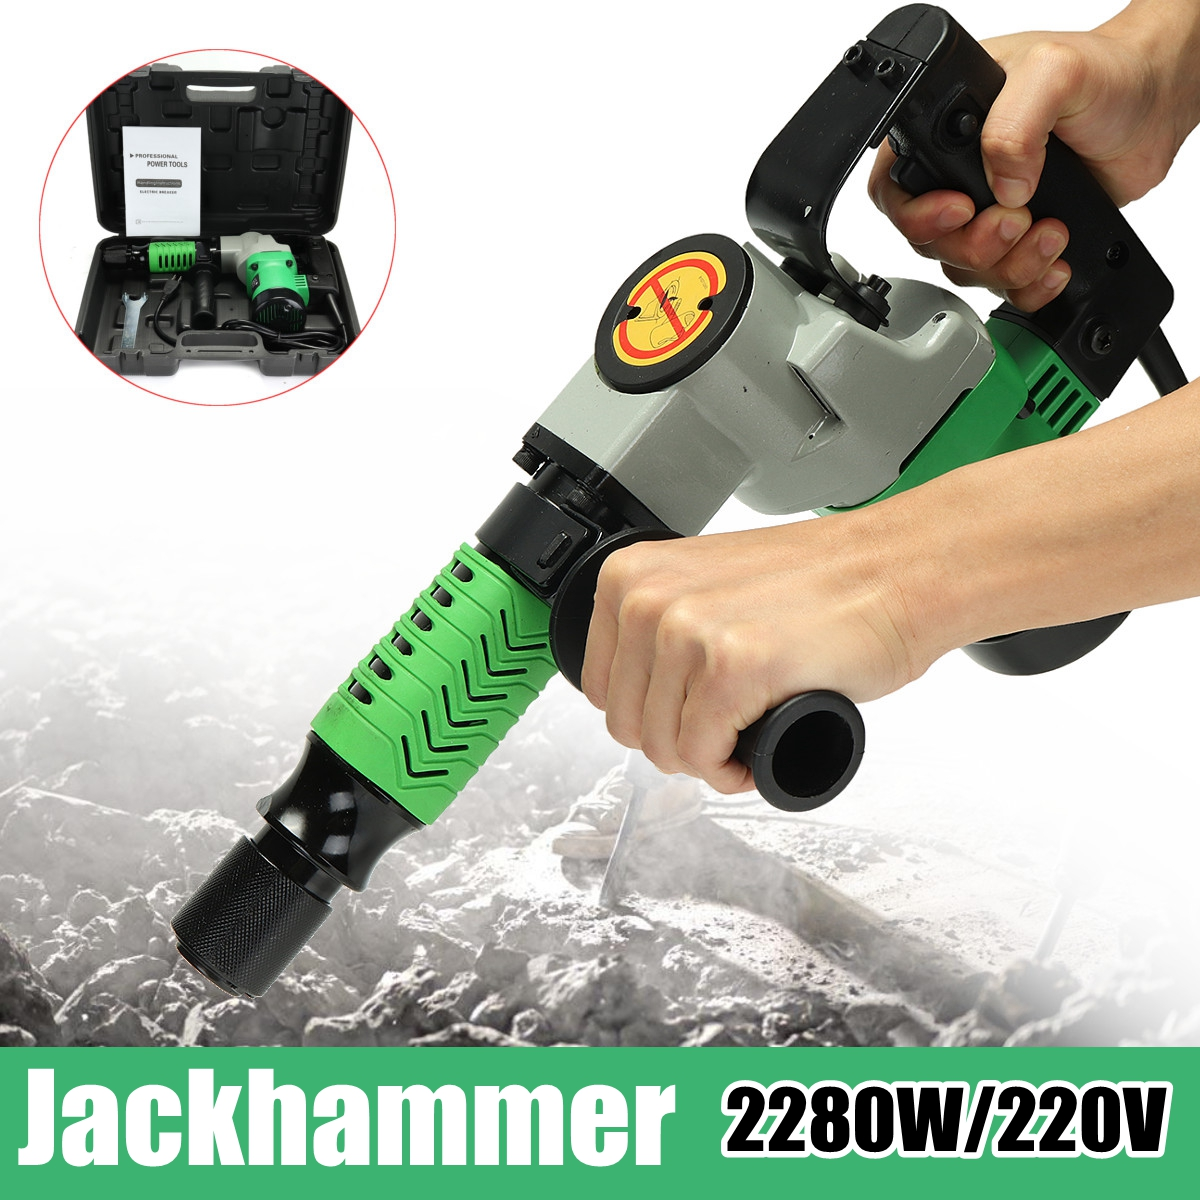 2280W 220V Electric Hammer Impact Drill Power Hammers Power Rotary Drill Household with Case dongcheng 220v 1010w electric impact drill darbeli matkap power drill stirring drilling 360 degree rotation power tools